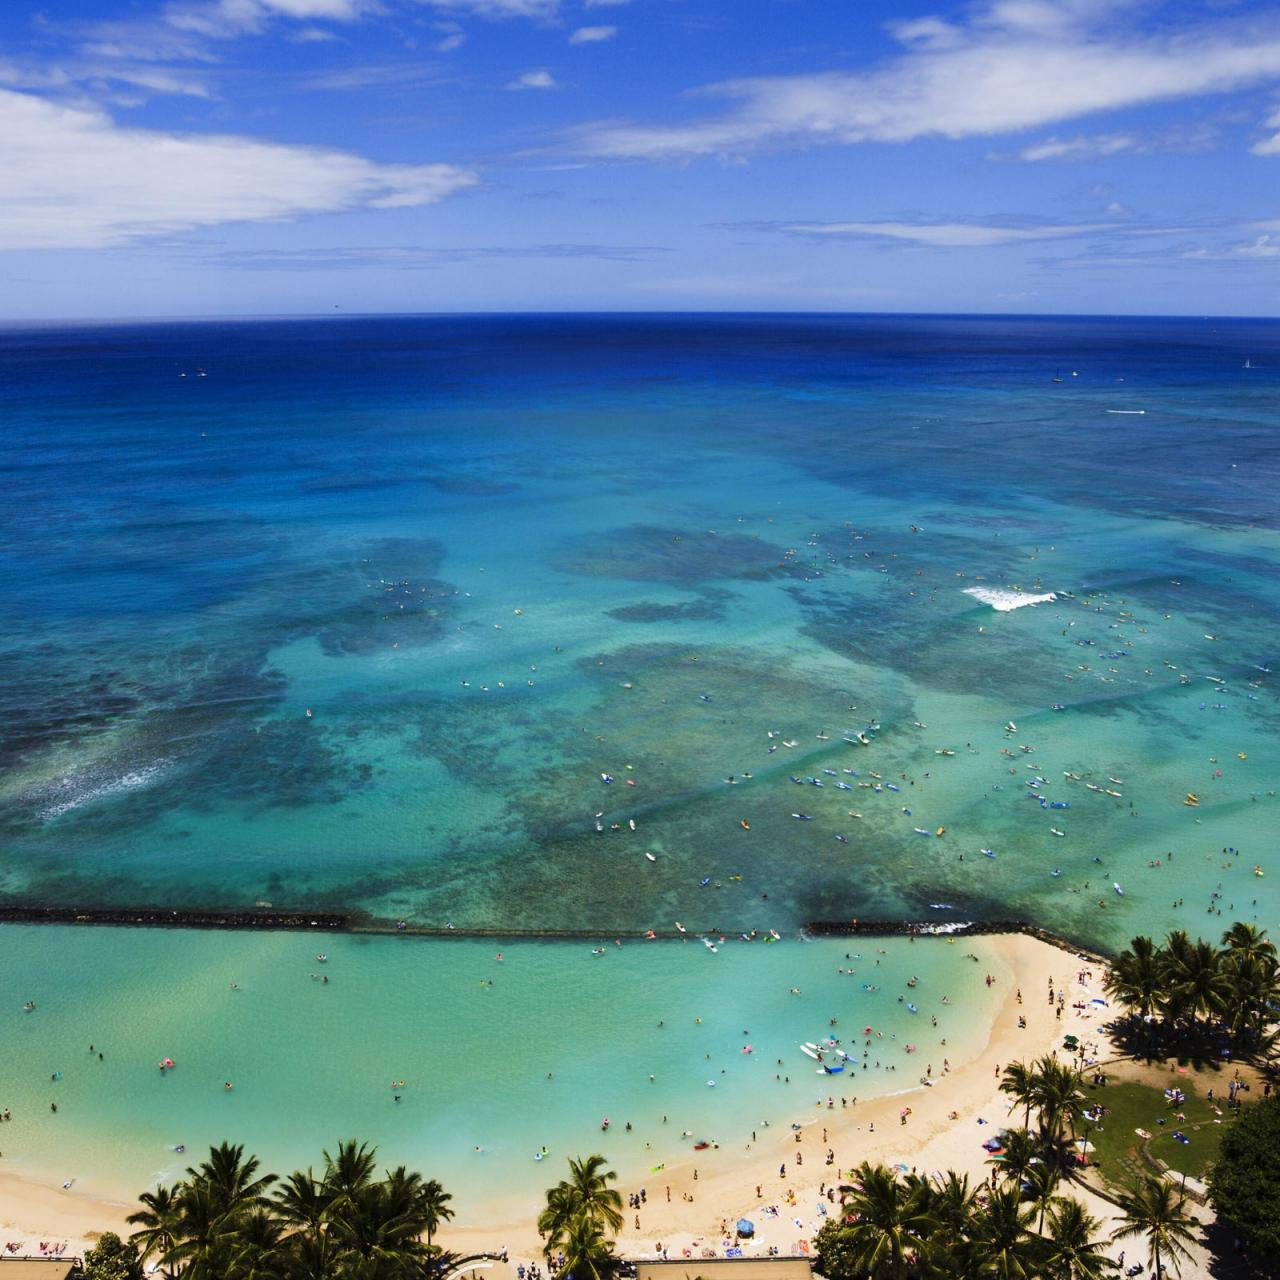 Hd 1600x900 Wallpaper: Hawaii Wallpaper Widescreen